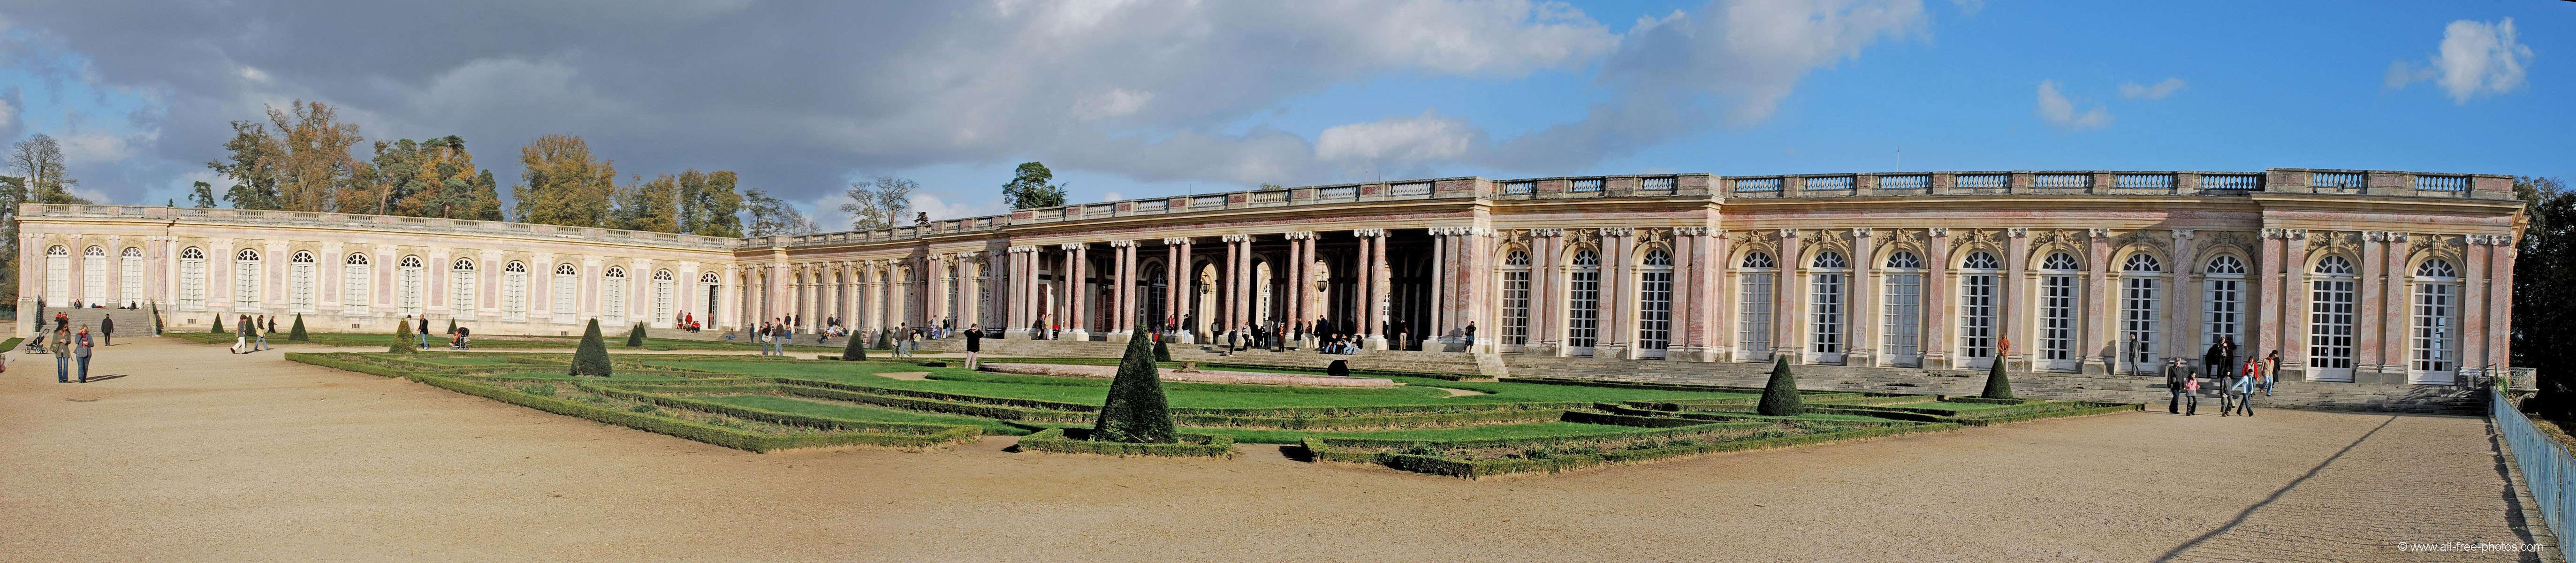 The Grand Trianon - Castle of Versailles - France